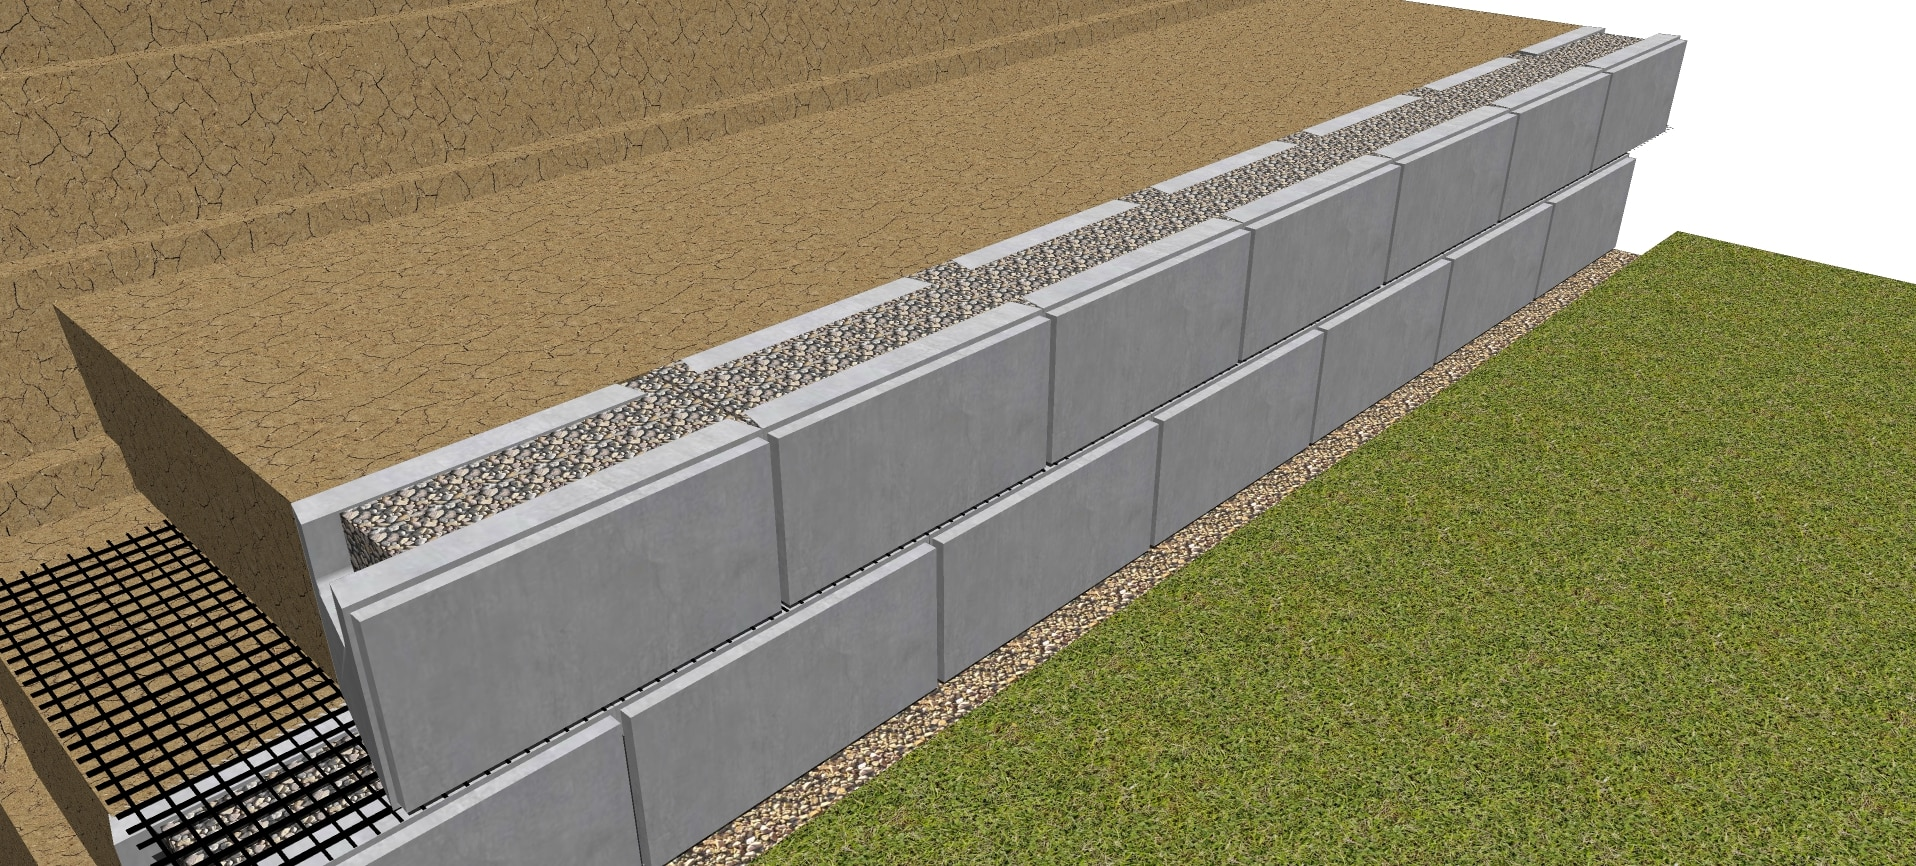 Second row drainage gravel